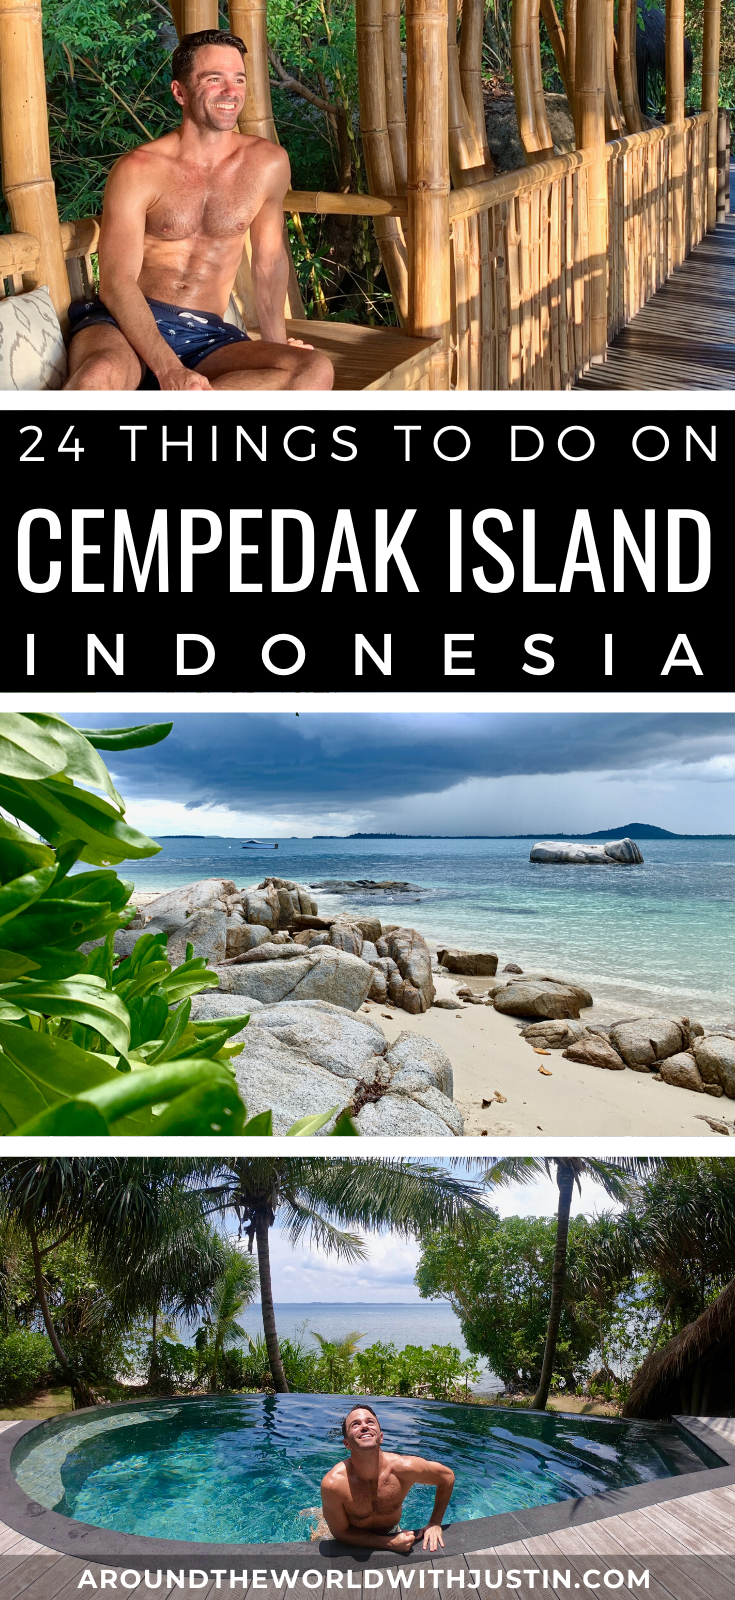 Cempedak Island Indonesia private resort